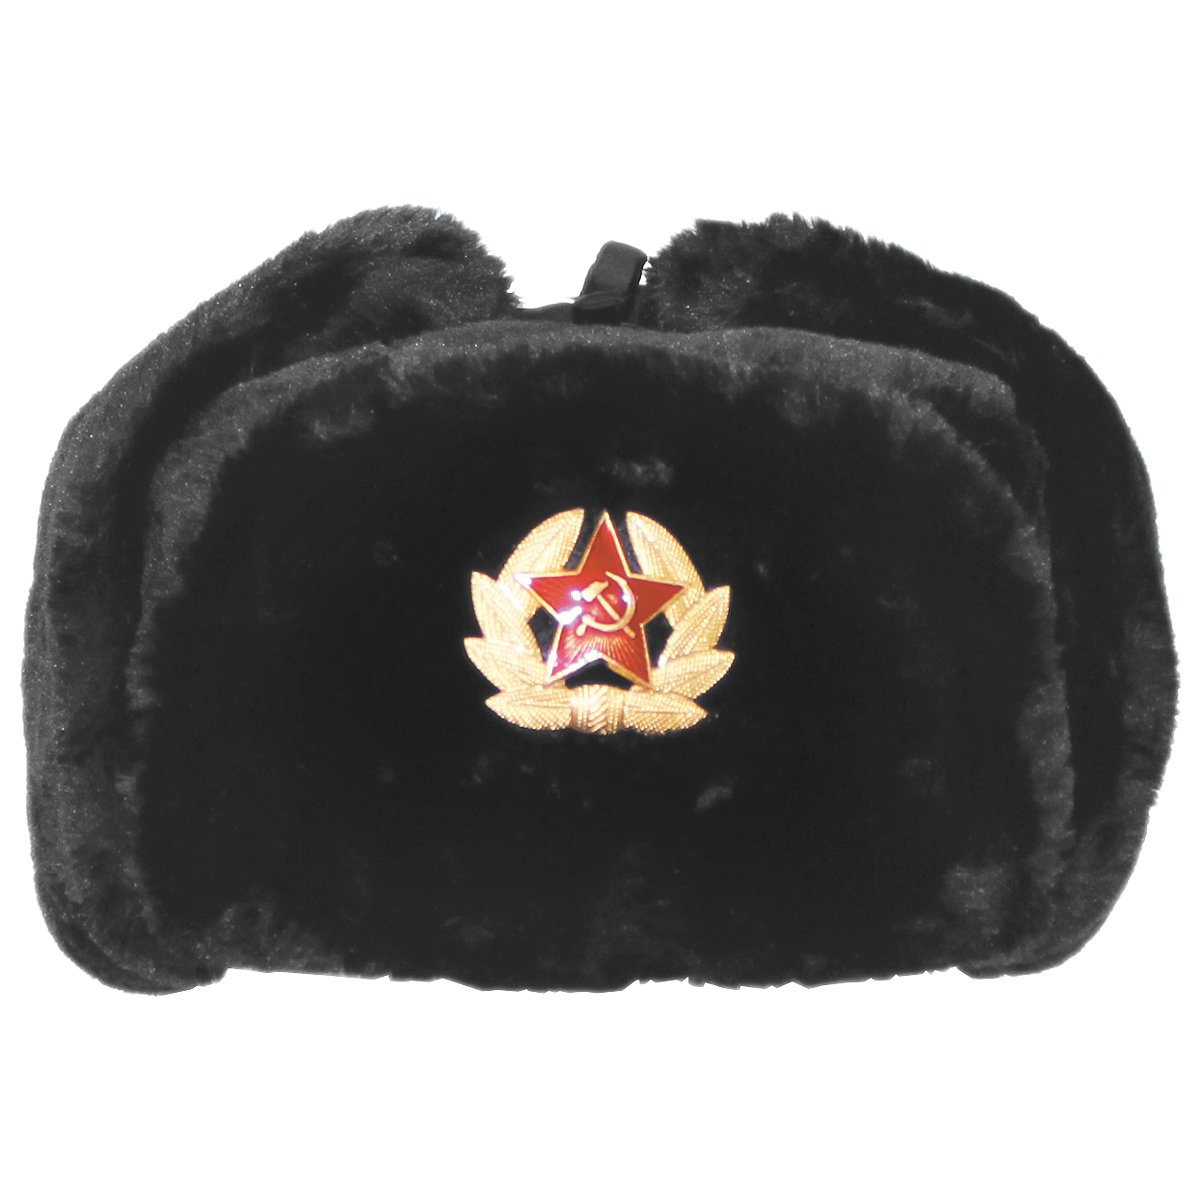 Russian Army Style Winter Cap Warm Trapper Hat Ear Flaps with Badge Black Mil-Tec